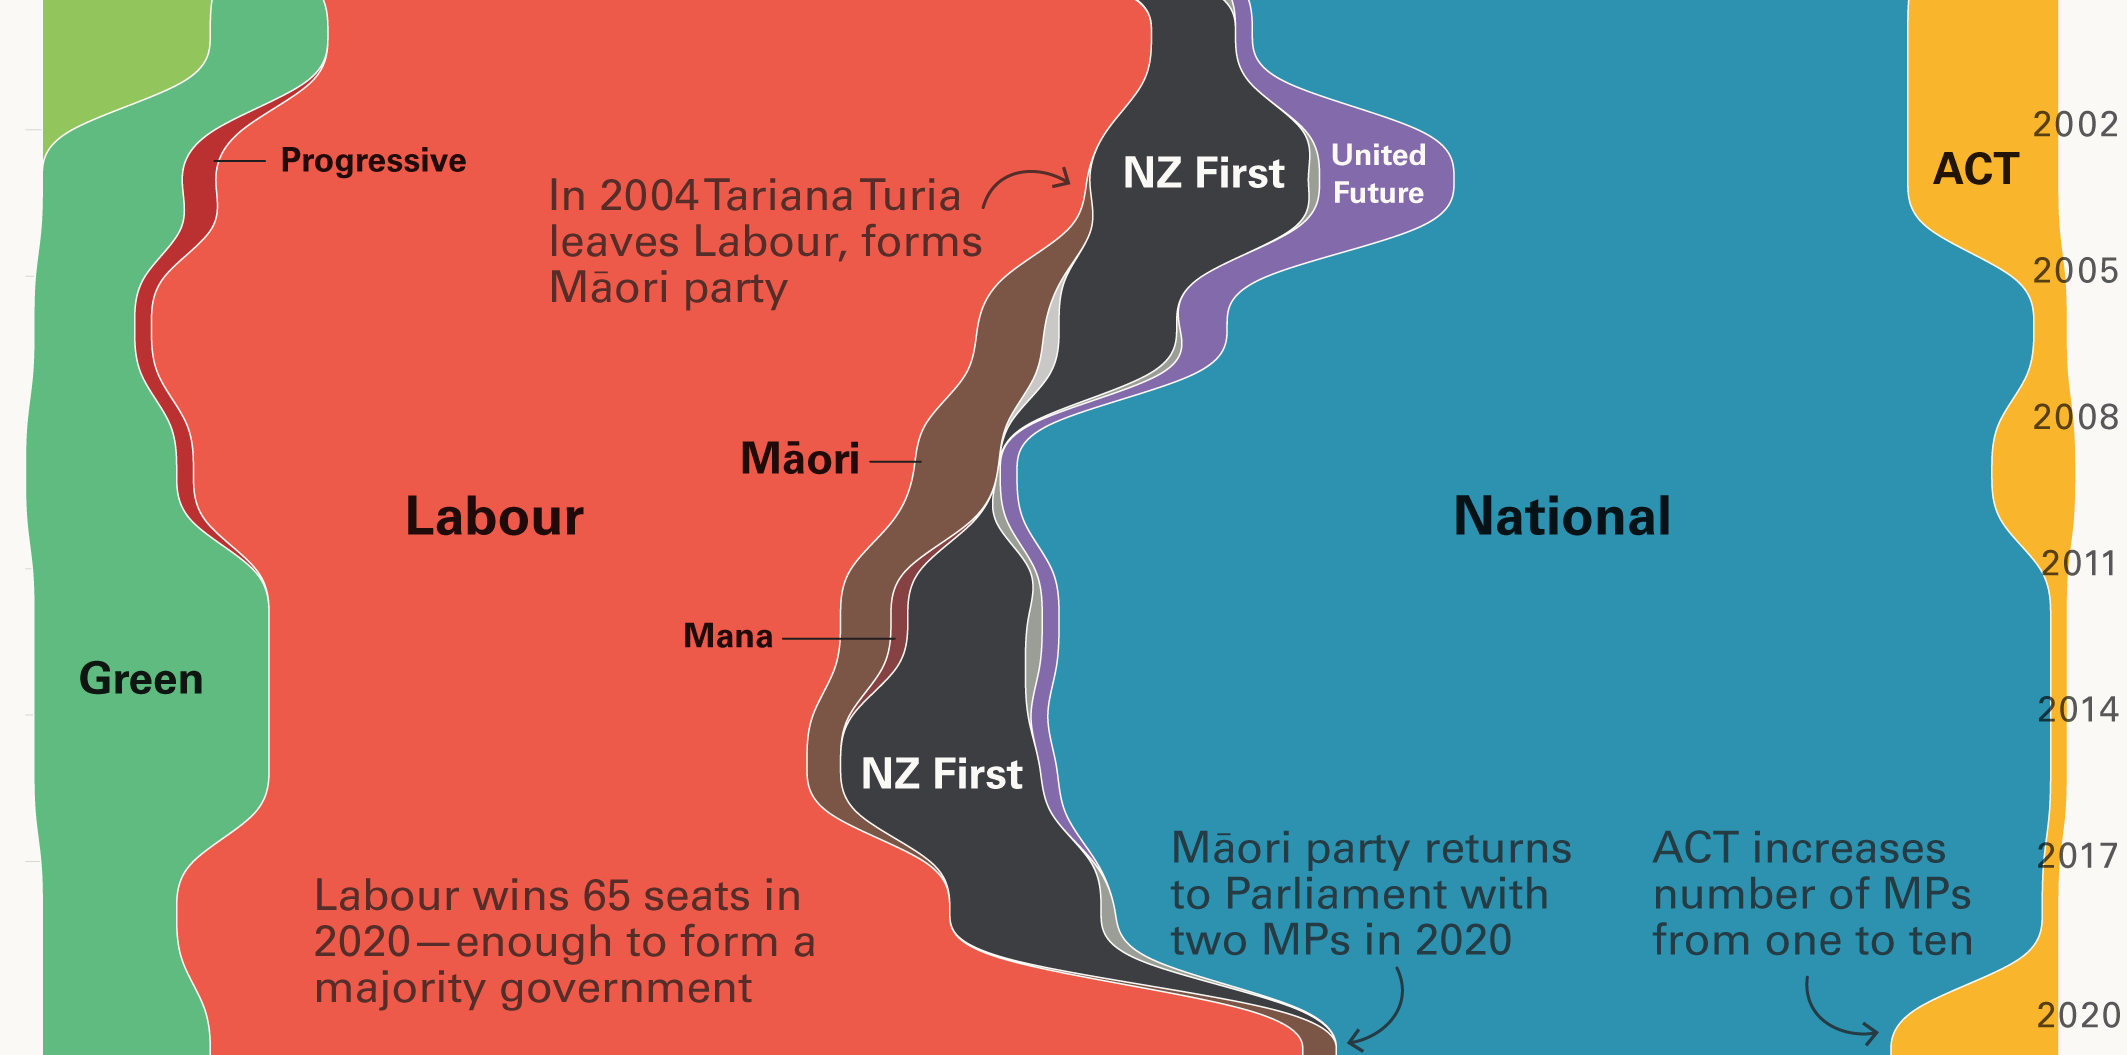 Recent New Zealand Parliamentary history